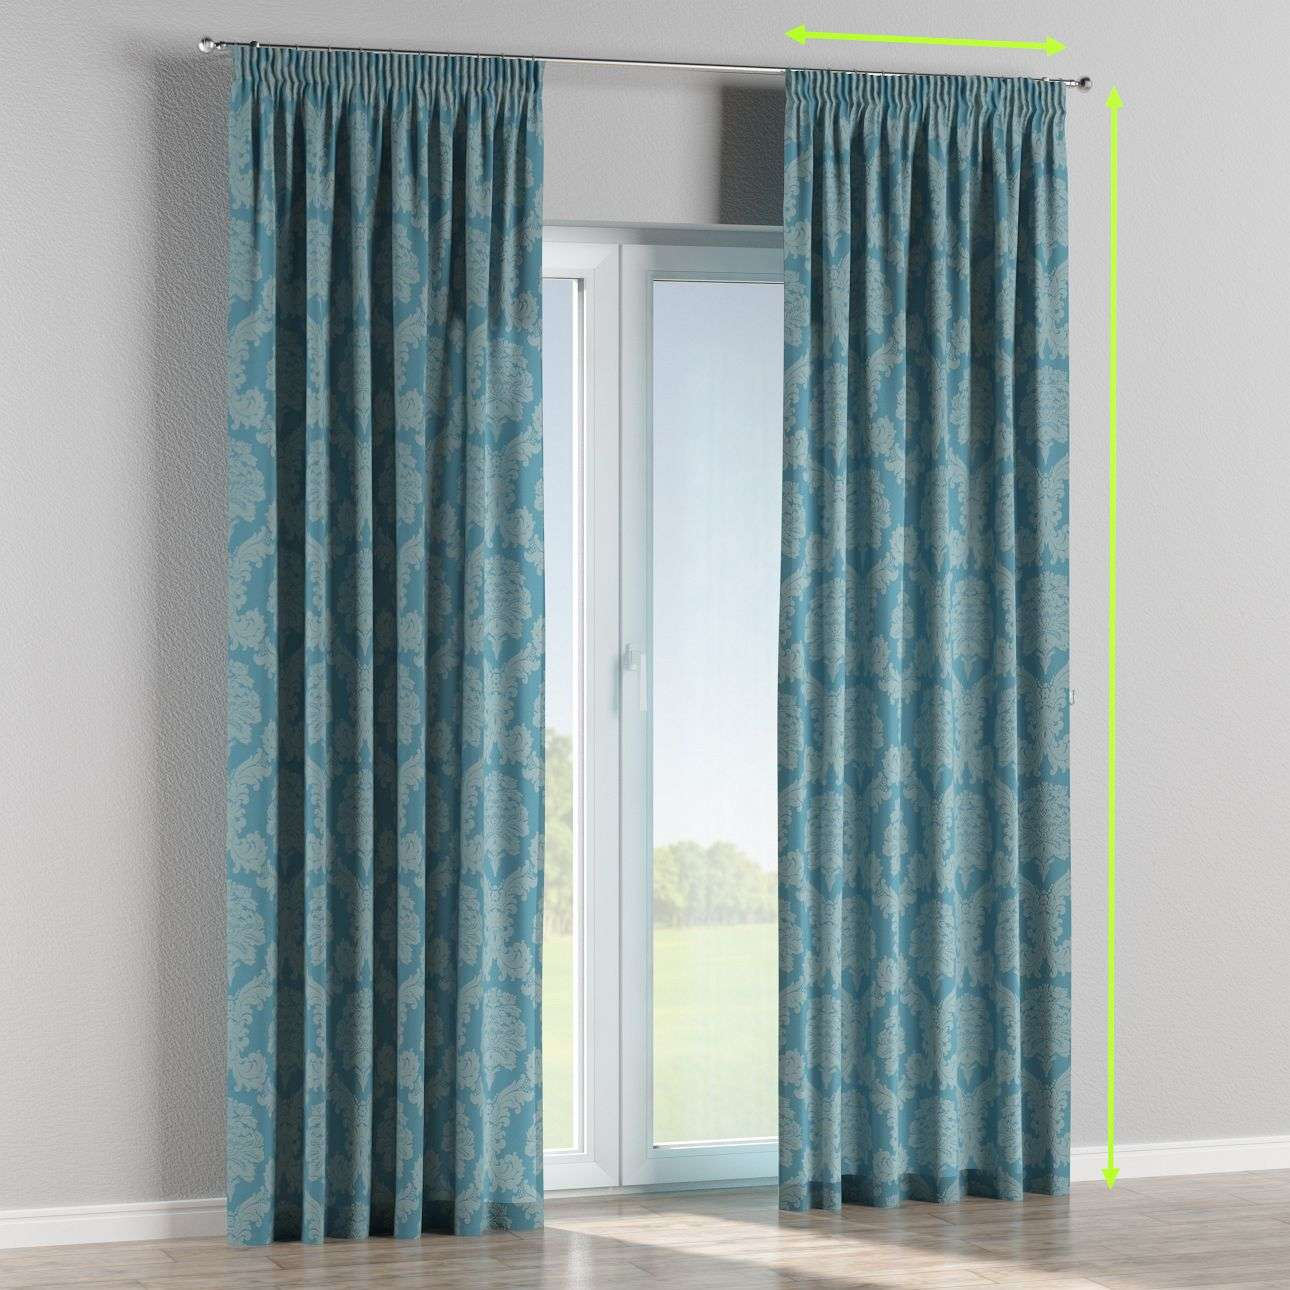 Pencil pleat lined curtains in collection Damasco, fabric: 613-67